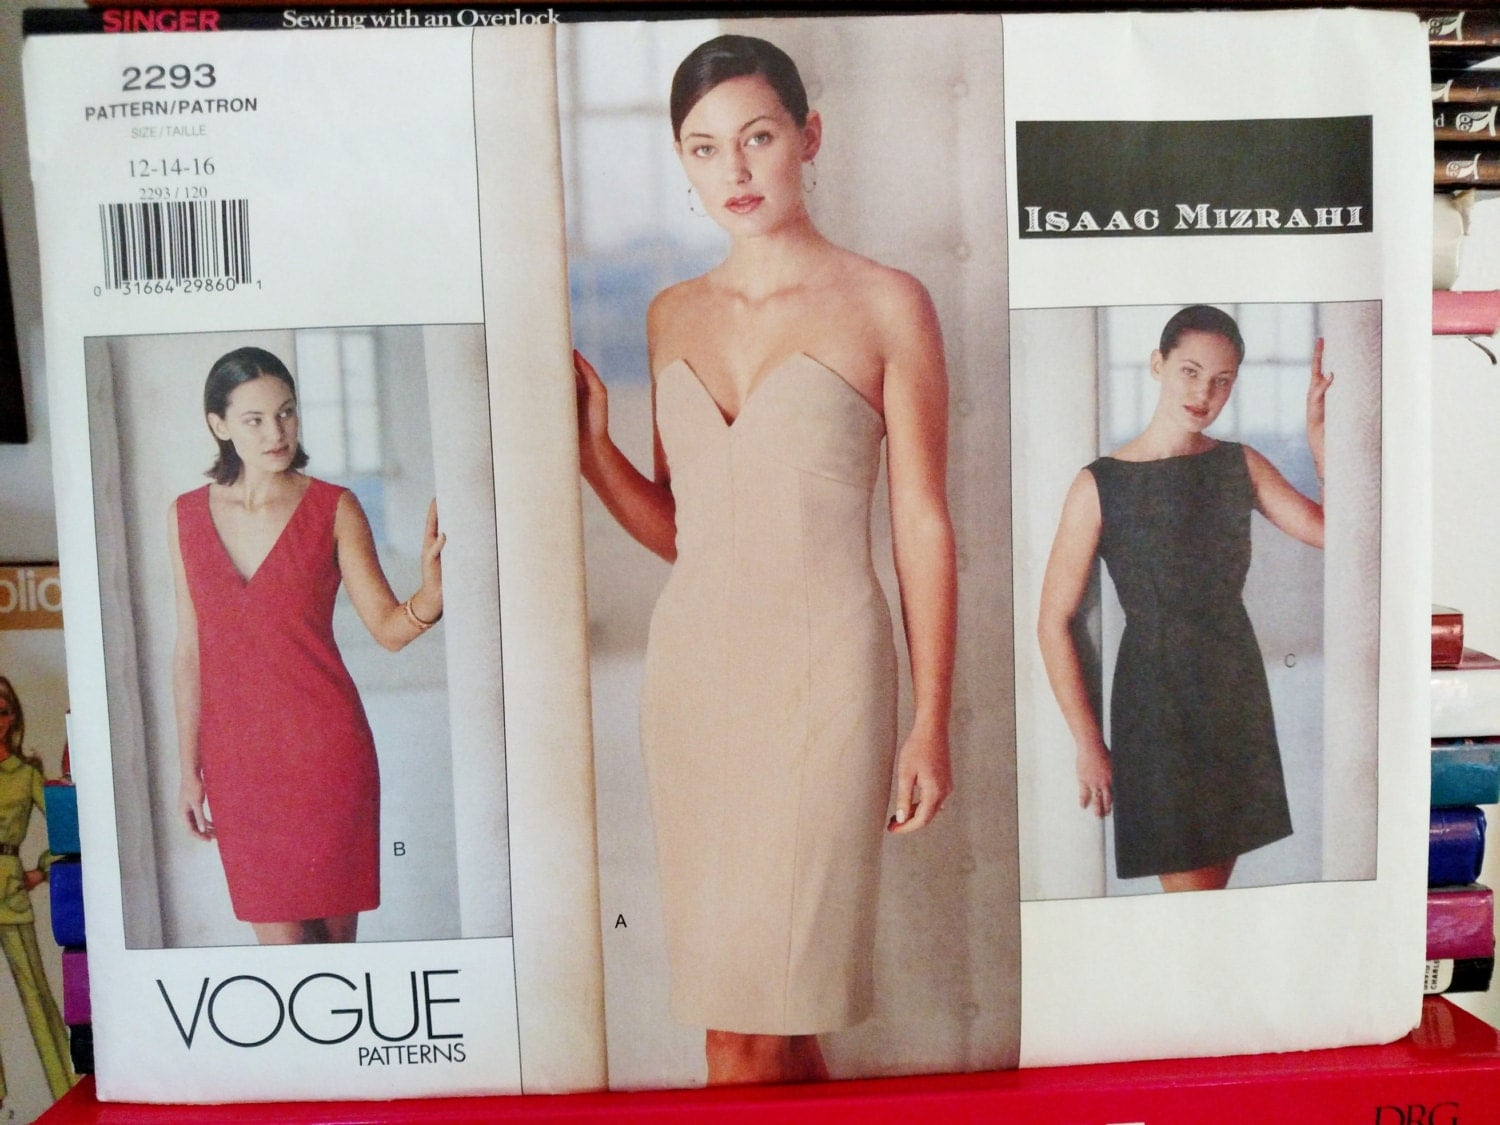 L t 1999 vogue designer isaac mizrahi n 2293 robe de for Robes de mariage cible isaac mizrahi